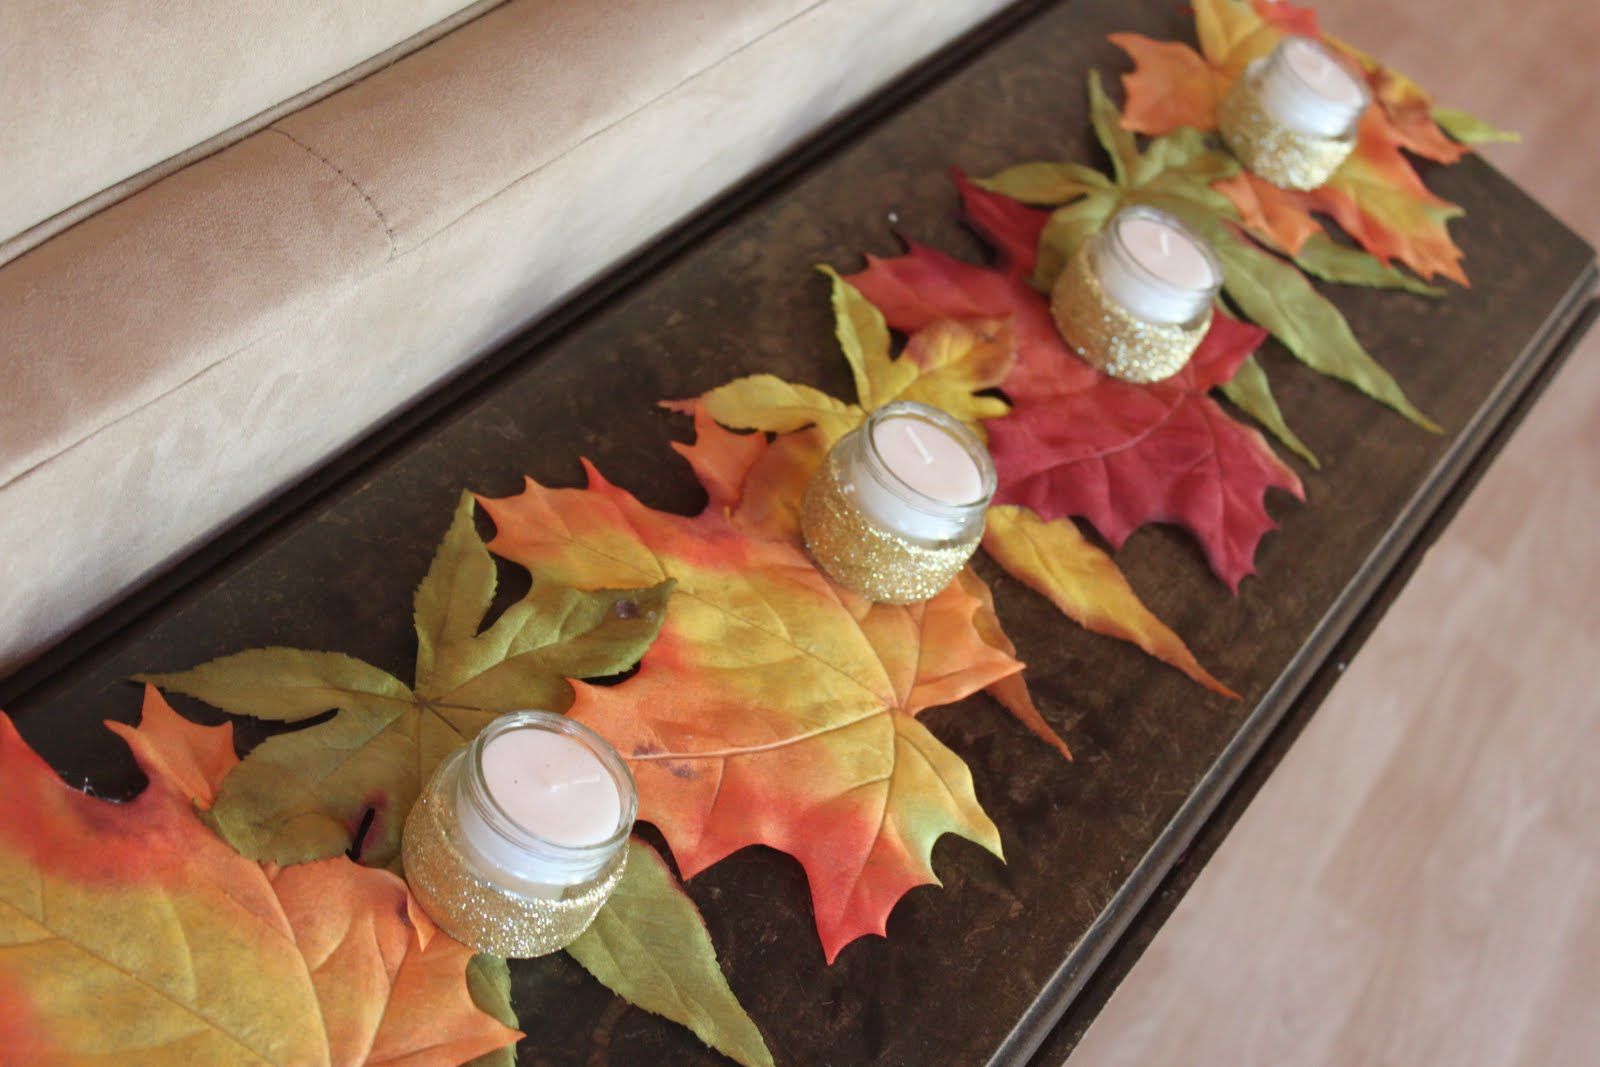 I Saw These Huge Autumn Leaves At Rite Aid The Other Day And Last Night I  Came Up With The Idea For This Table Runner And Went Back And Picked Up A  ...